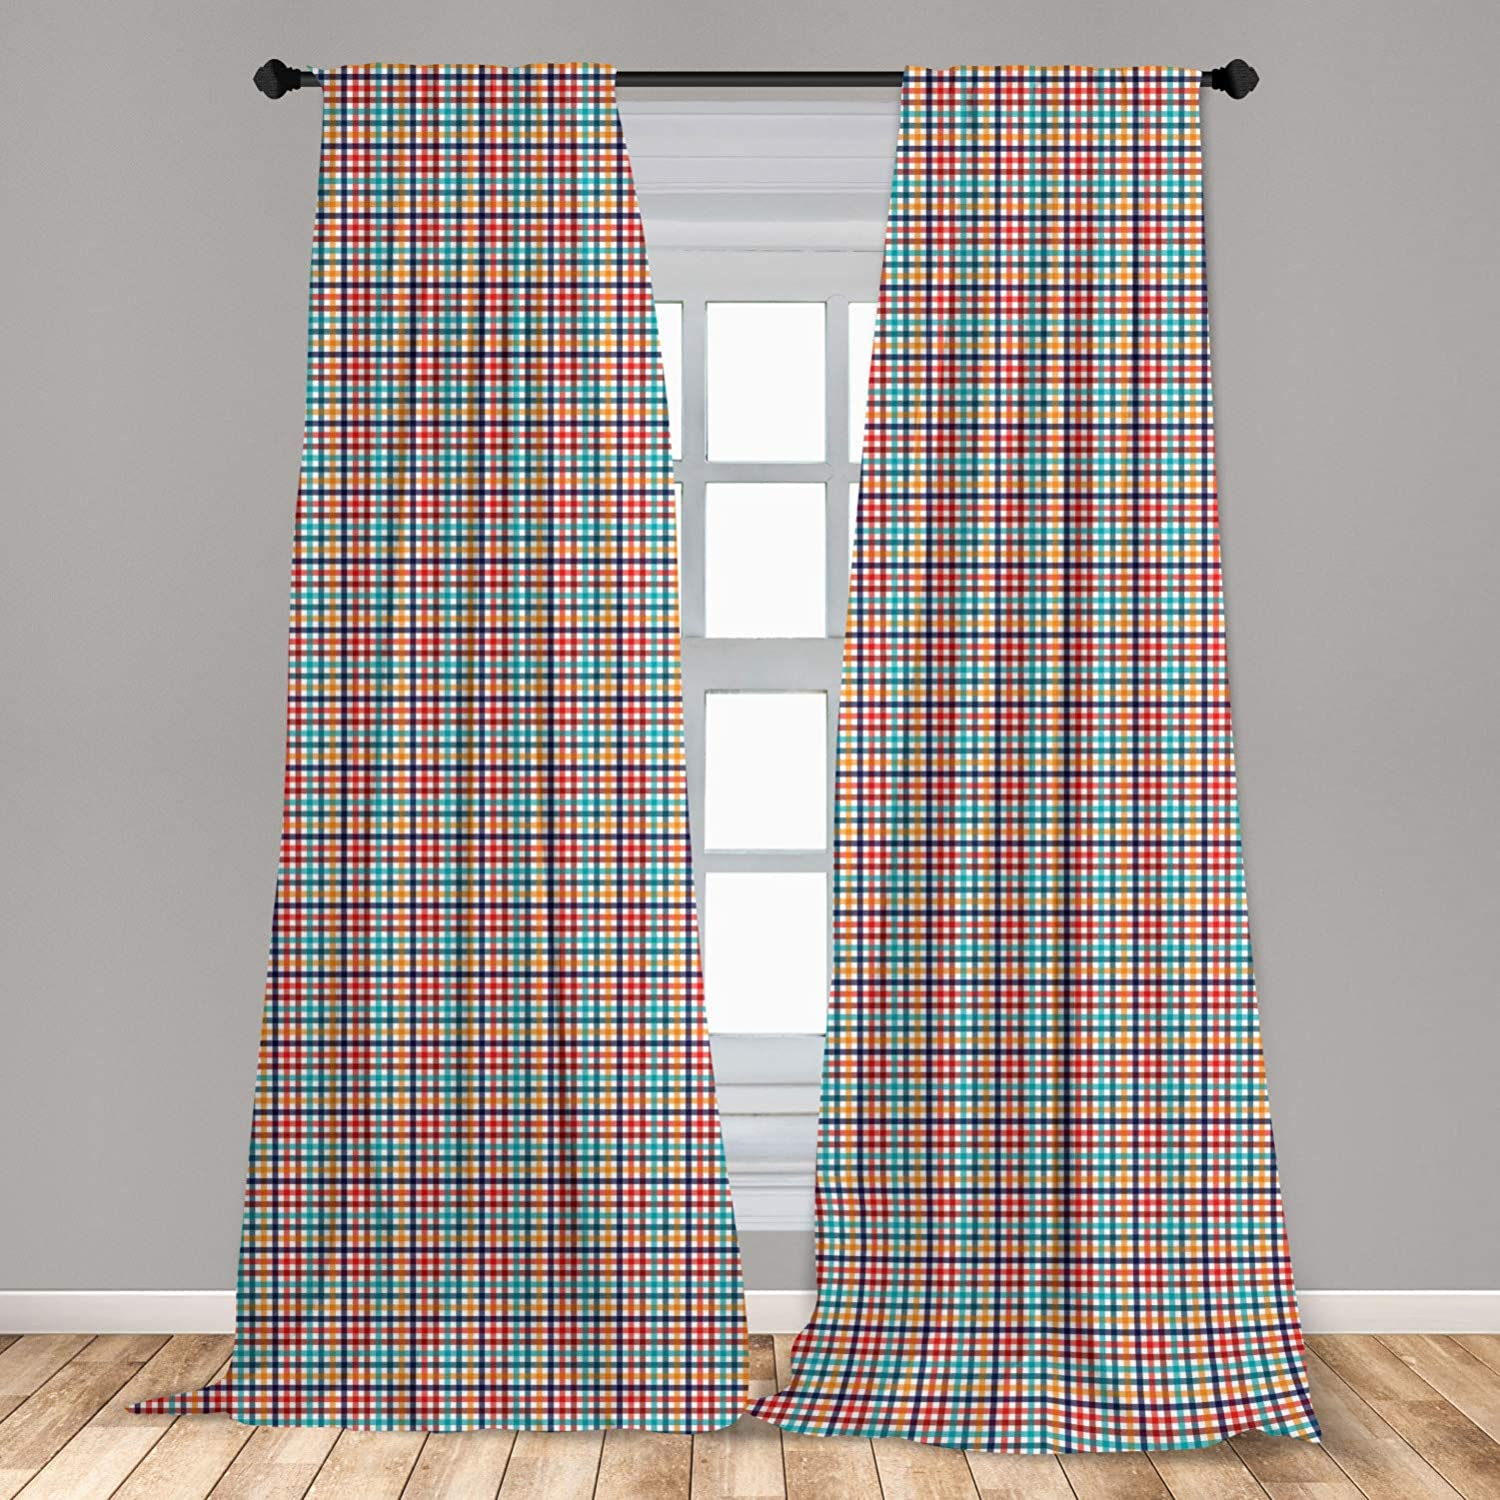 Ambesonne Checkered Window Curtains, Colorful Fresh Summertime Pattern Design Gingham Plaid Striped Traditional Picnic, Lightweight Decorative Panels Set of 2 with Rod Pocket, 56